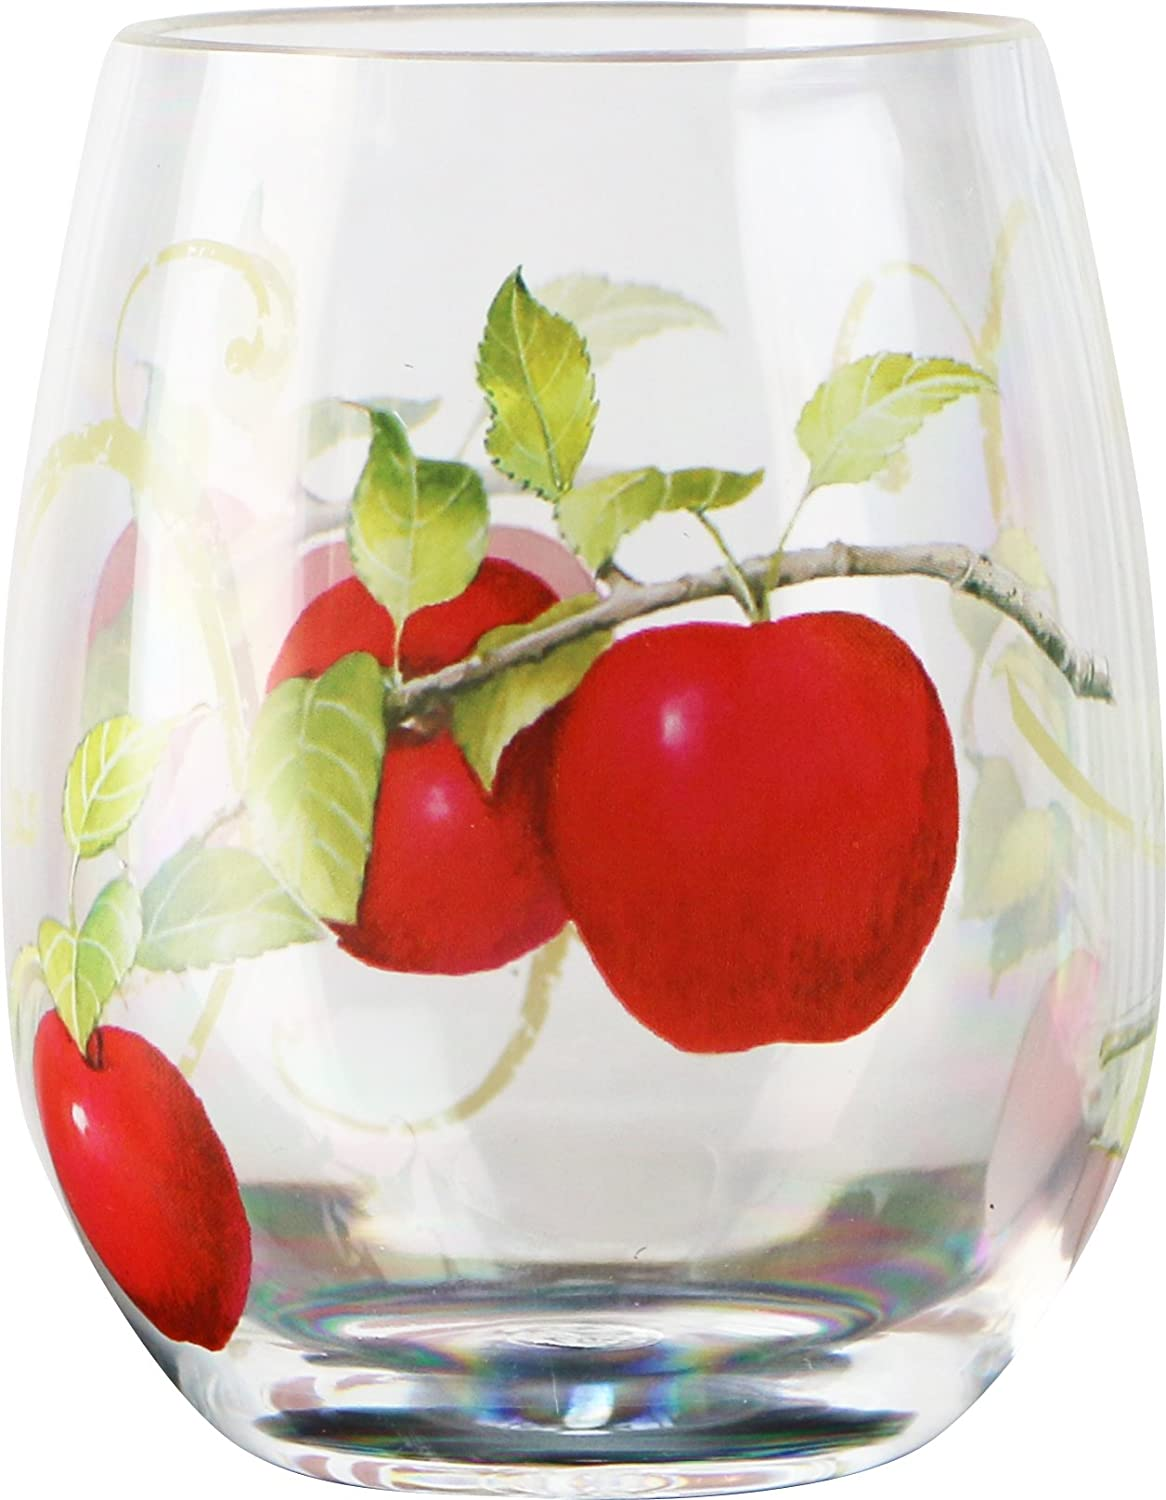 Reston Lloyd Harvest Apple Collection By Sandy Clough, 16 oz Stemless Wine Glass Set of 4, Clear